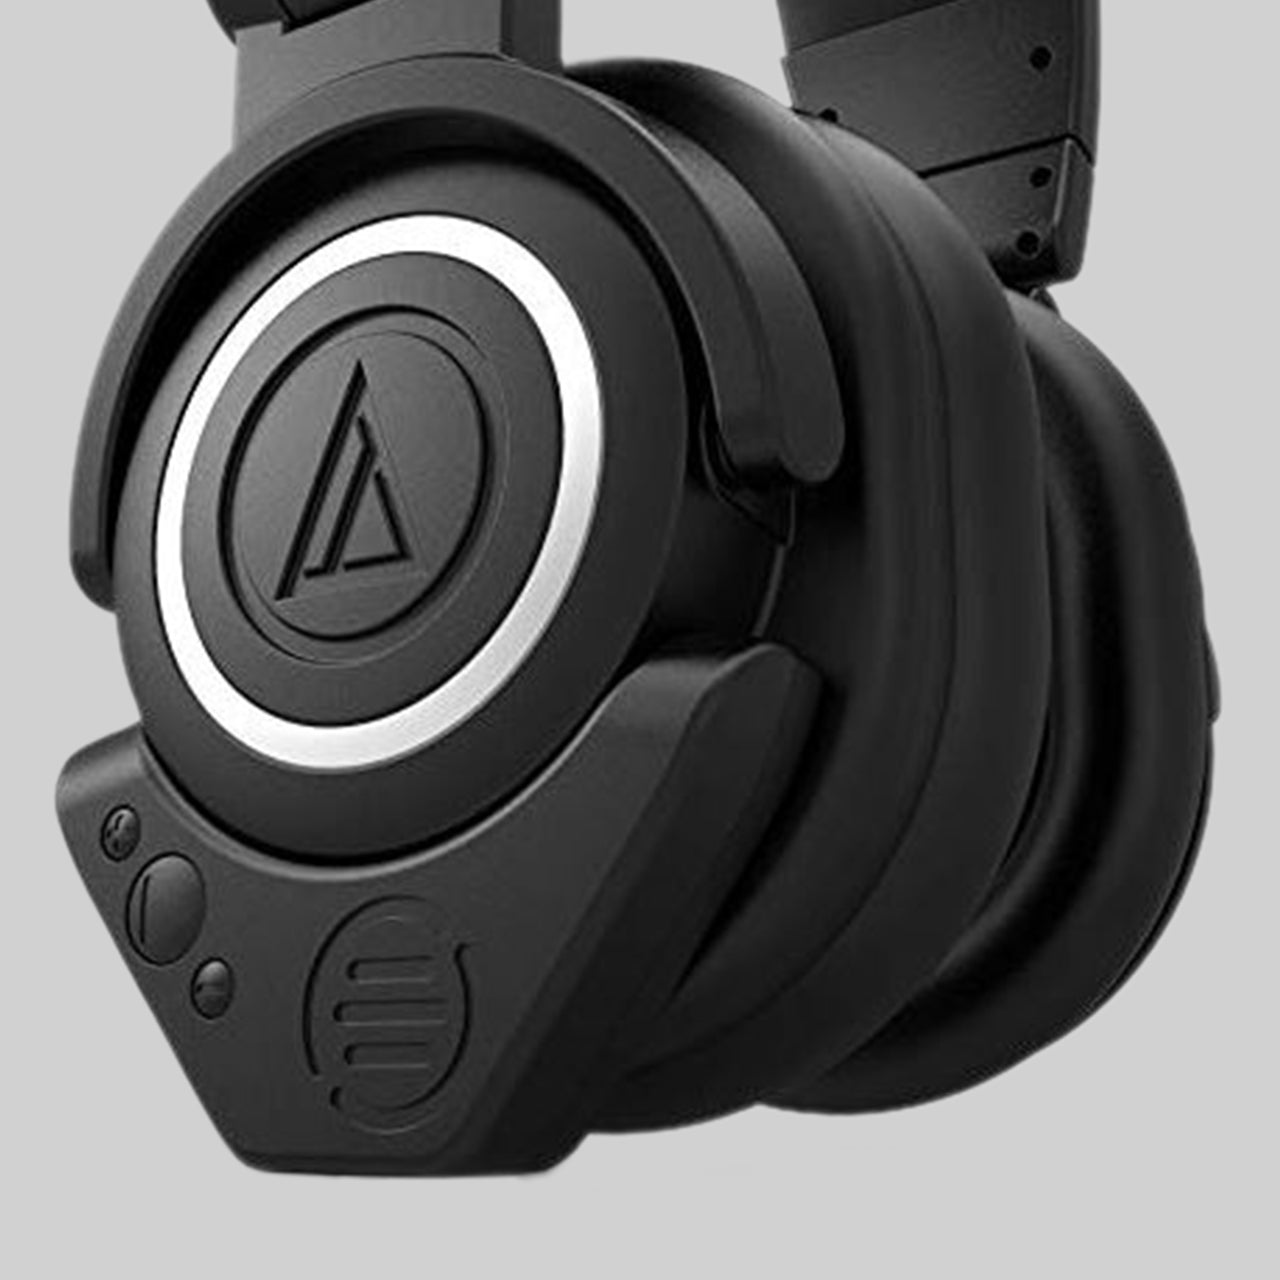 ATH M50X with Bluetooth Adapter (AptX Codec)